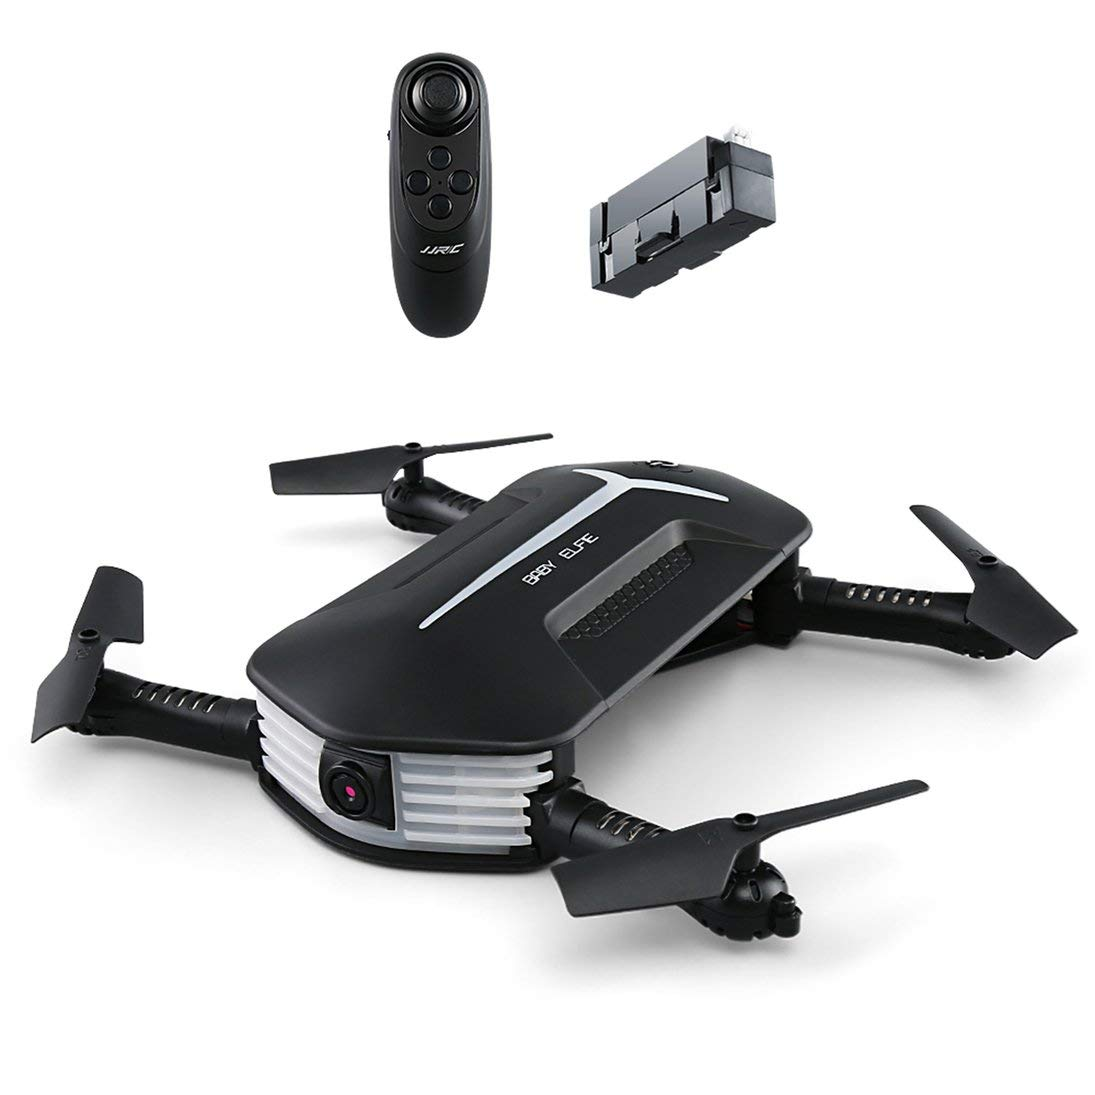 ToGames-ES JJR/C H37 Mini Drone 2.4G FPV RC Quadcopter with 720P Camera Altitude Hold